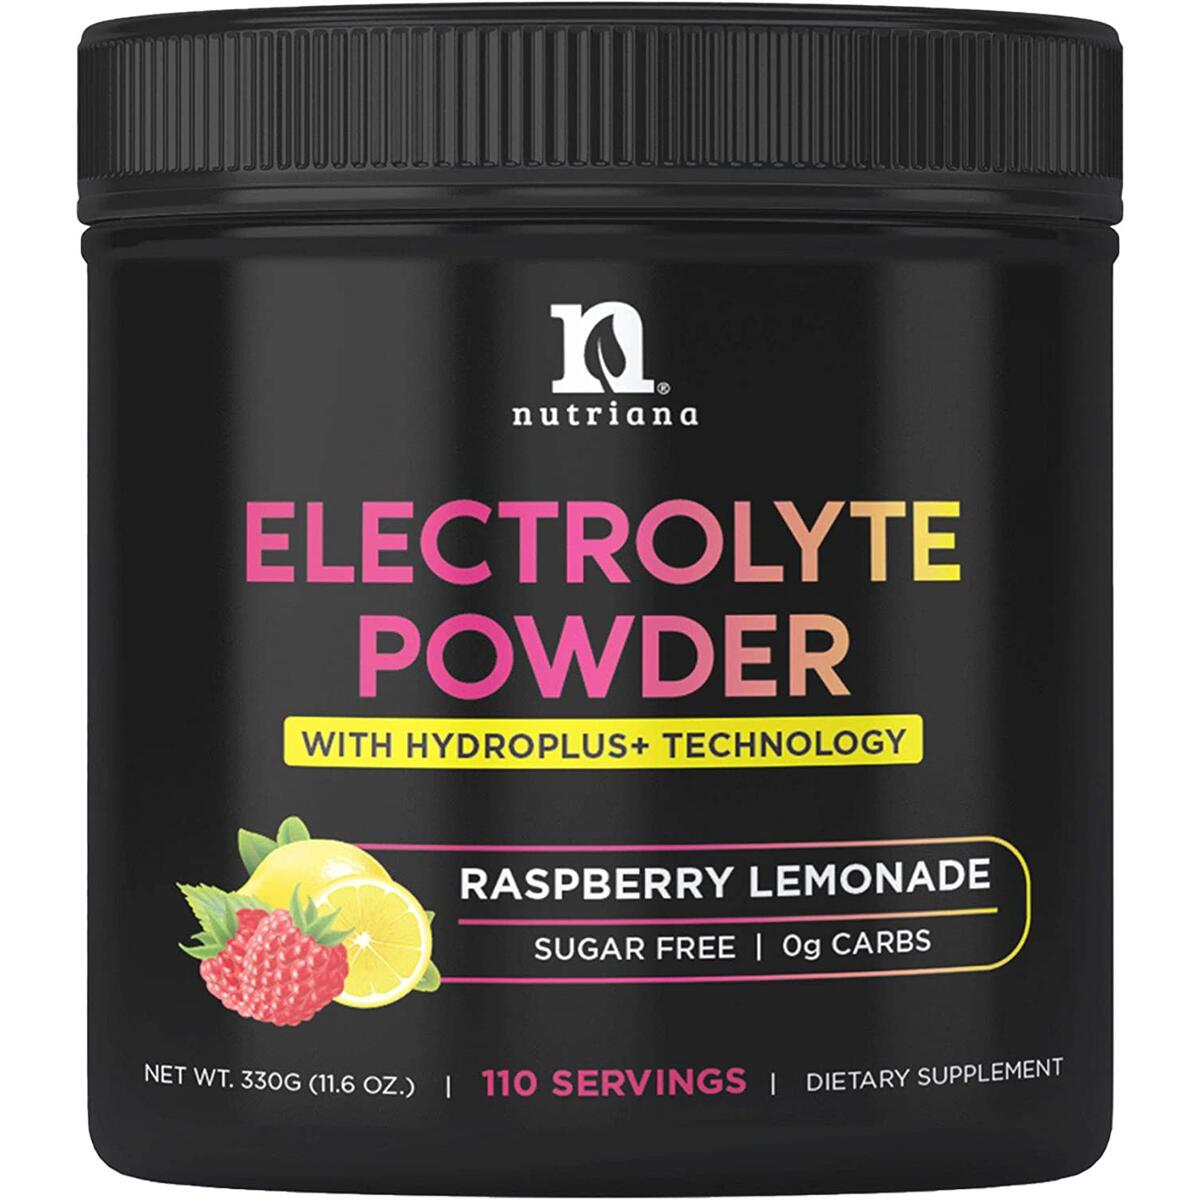 Nutriana Electrolyte Powder - We're Also Offering $10 Off Coupon At Checkout!